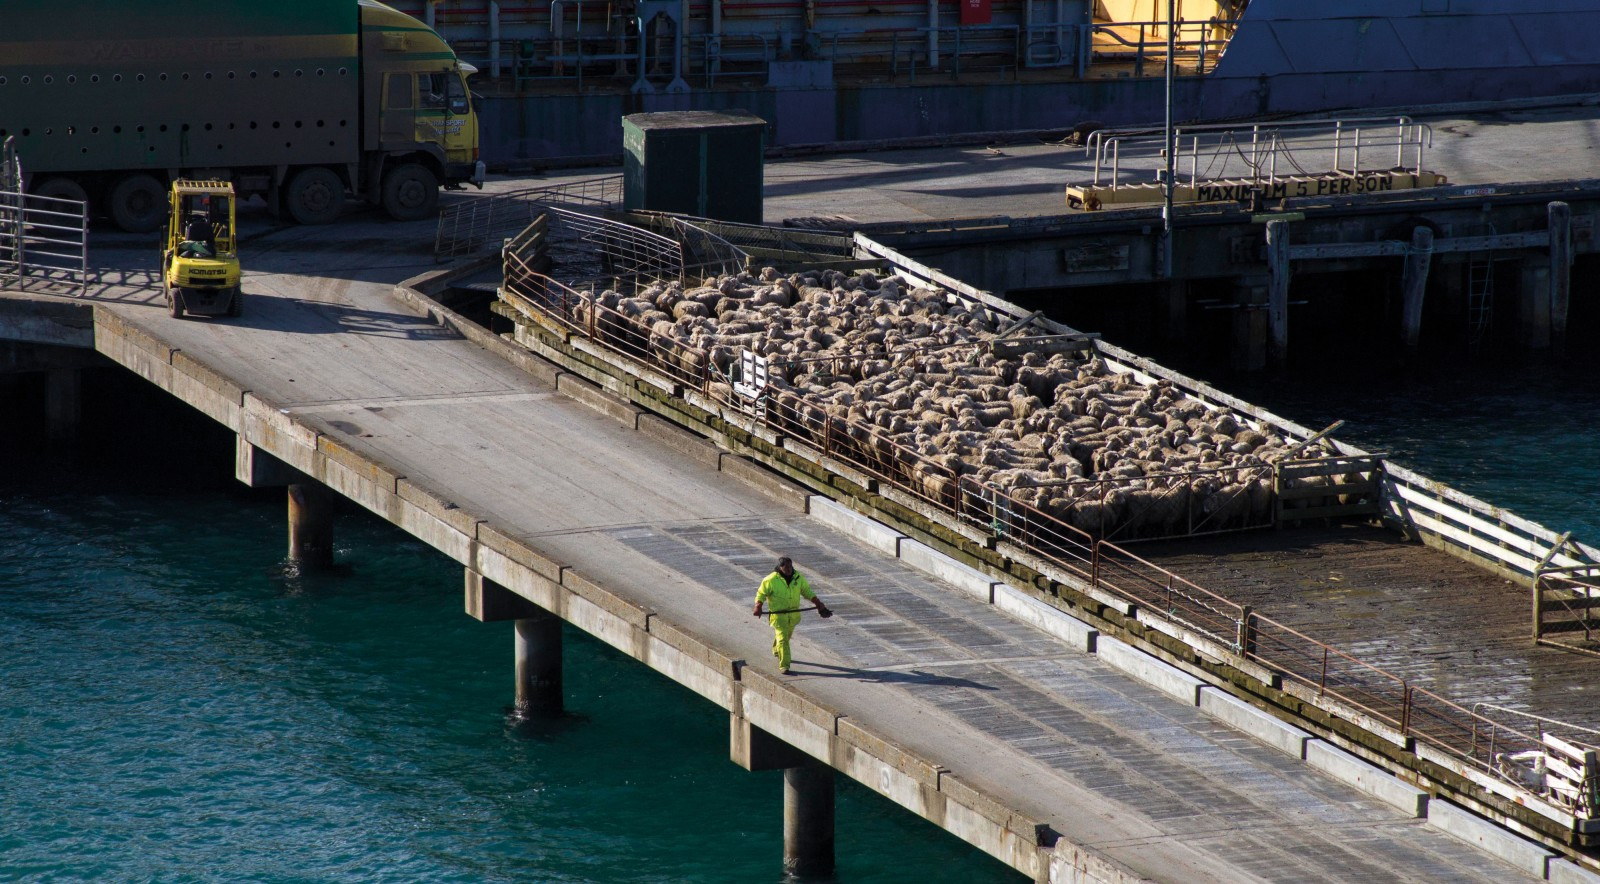 Sheep bound for the freezing works in New Zealand are yarded on the wharf at Waitangi, the main settlement on Chatham Island, as they wait to board a cargo ship. A $52 million replacement wharf and breakwater are under construction, and will eliminate the costly delays incurred currently when heavy weather prevents vessels from berthing.